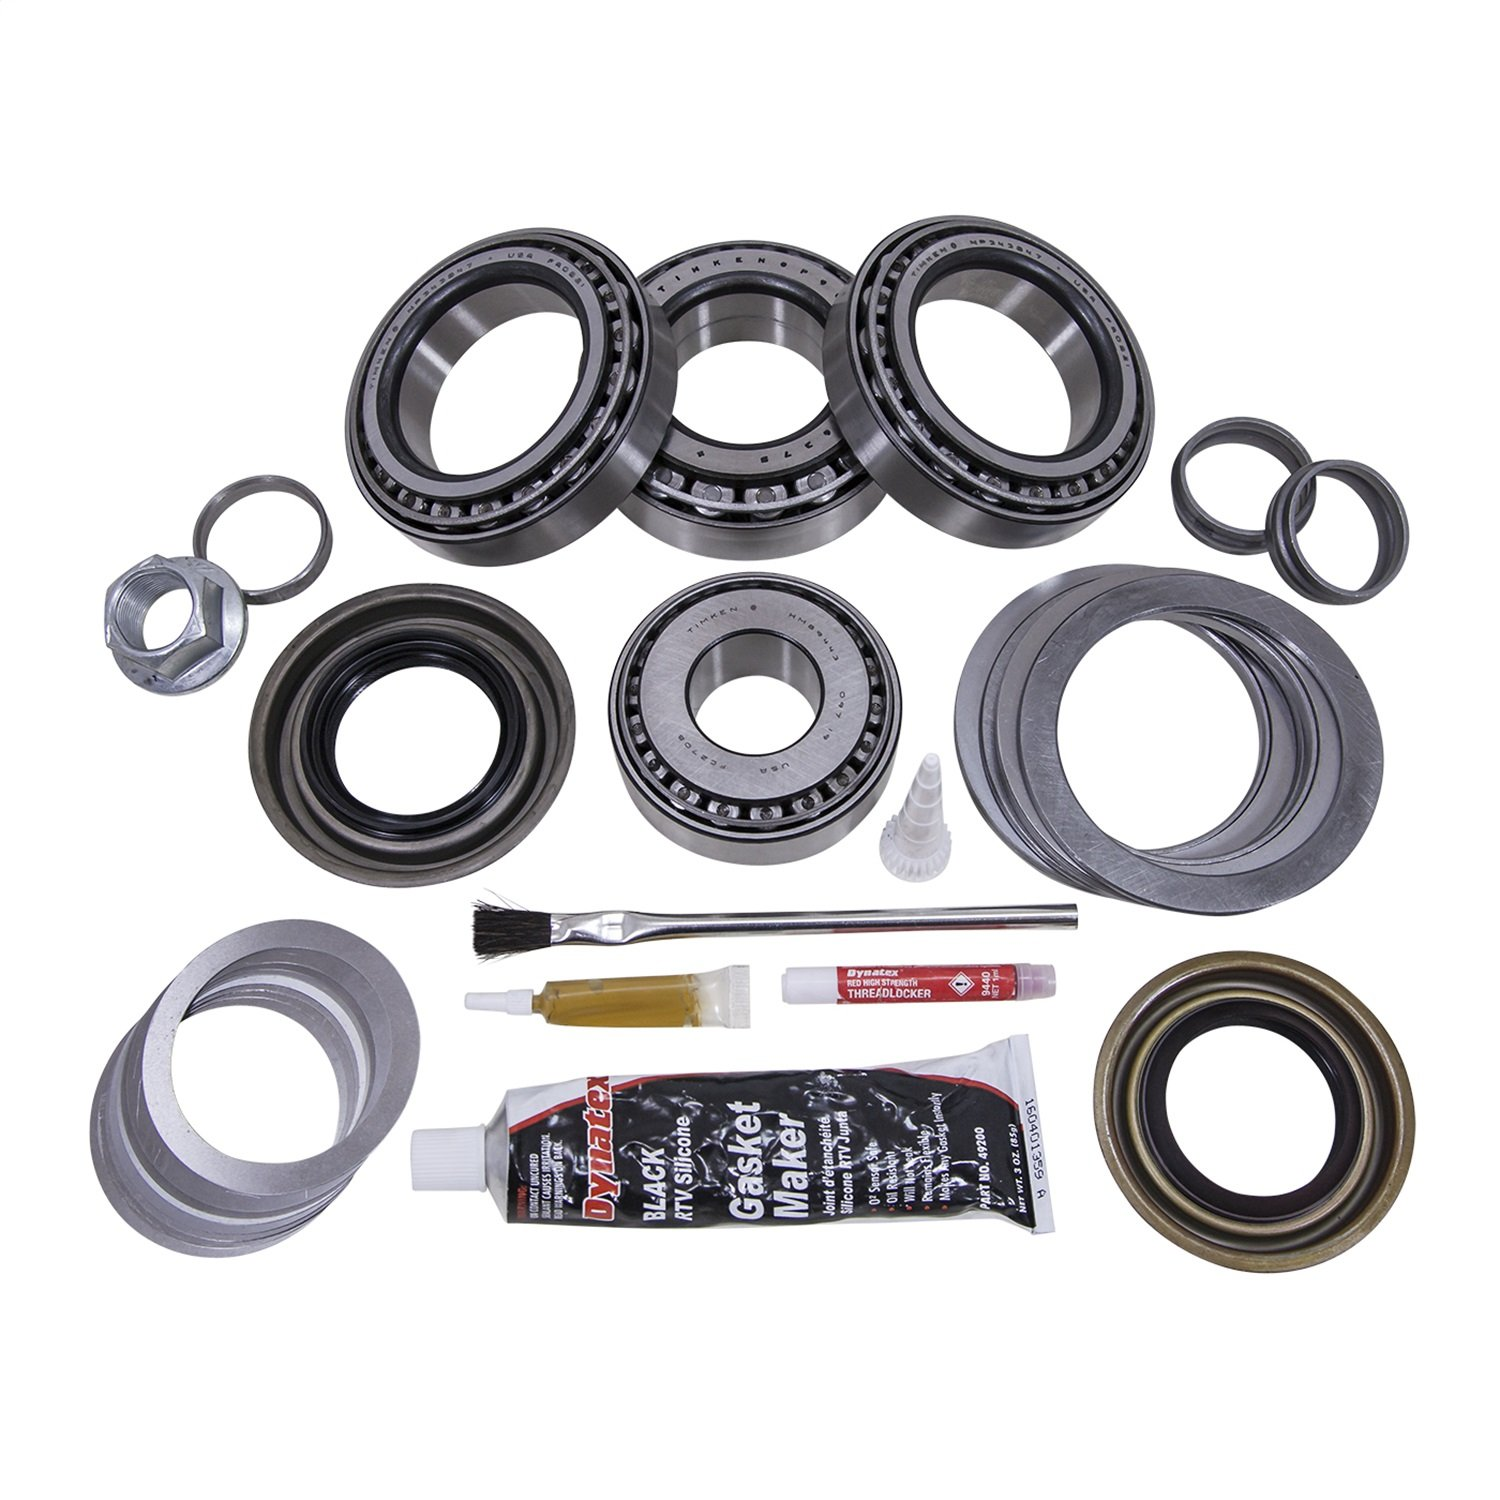 Yukon Gear /& Axle Master Overhaul Kit for Ford 9.75 Differential YK F9.75-D